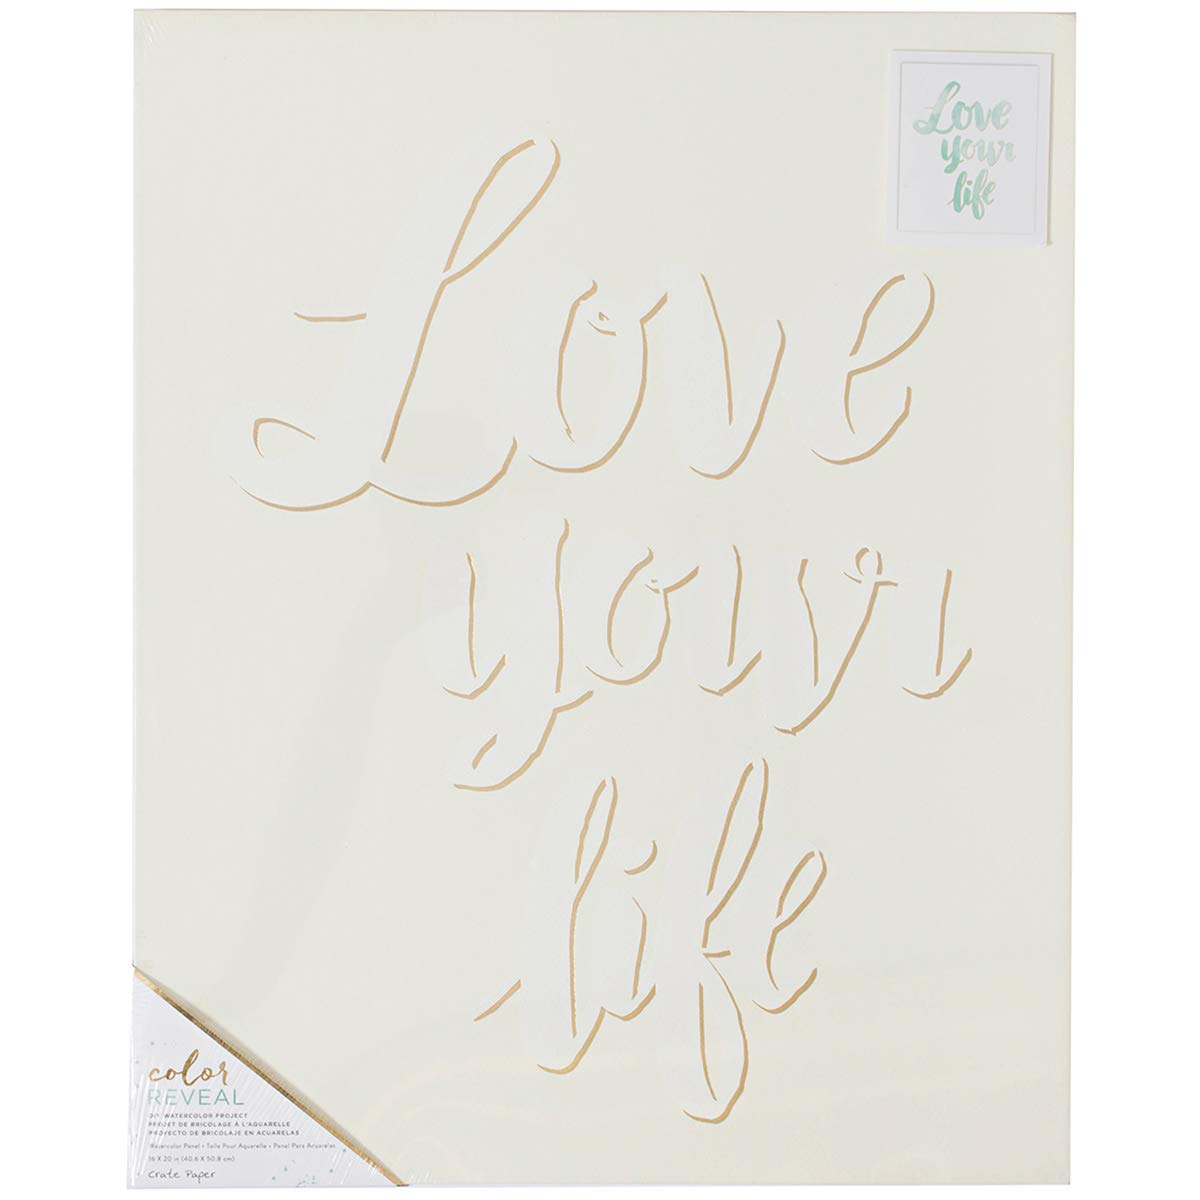 American Crafts Crate Paper Color Reveal Collection Watercolor Panel 16 X 20 Love Your Life (12 Pack)